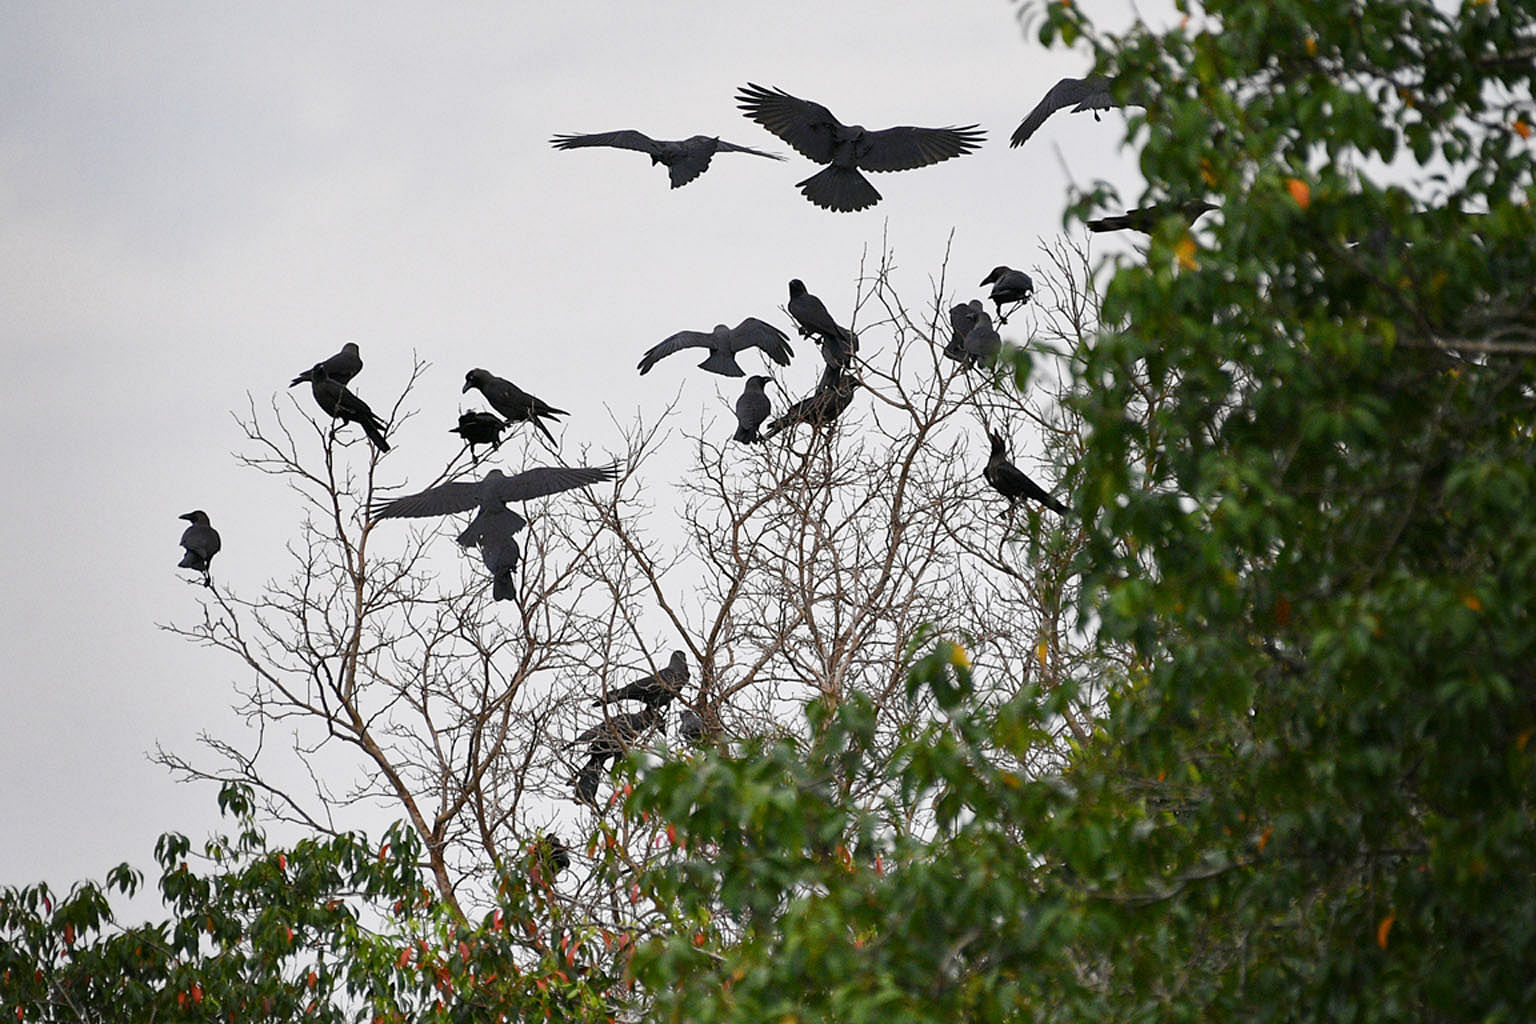 More crows have been seen at Sungei Buloh Wetland Reserve (above).